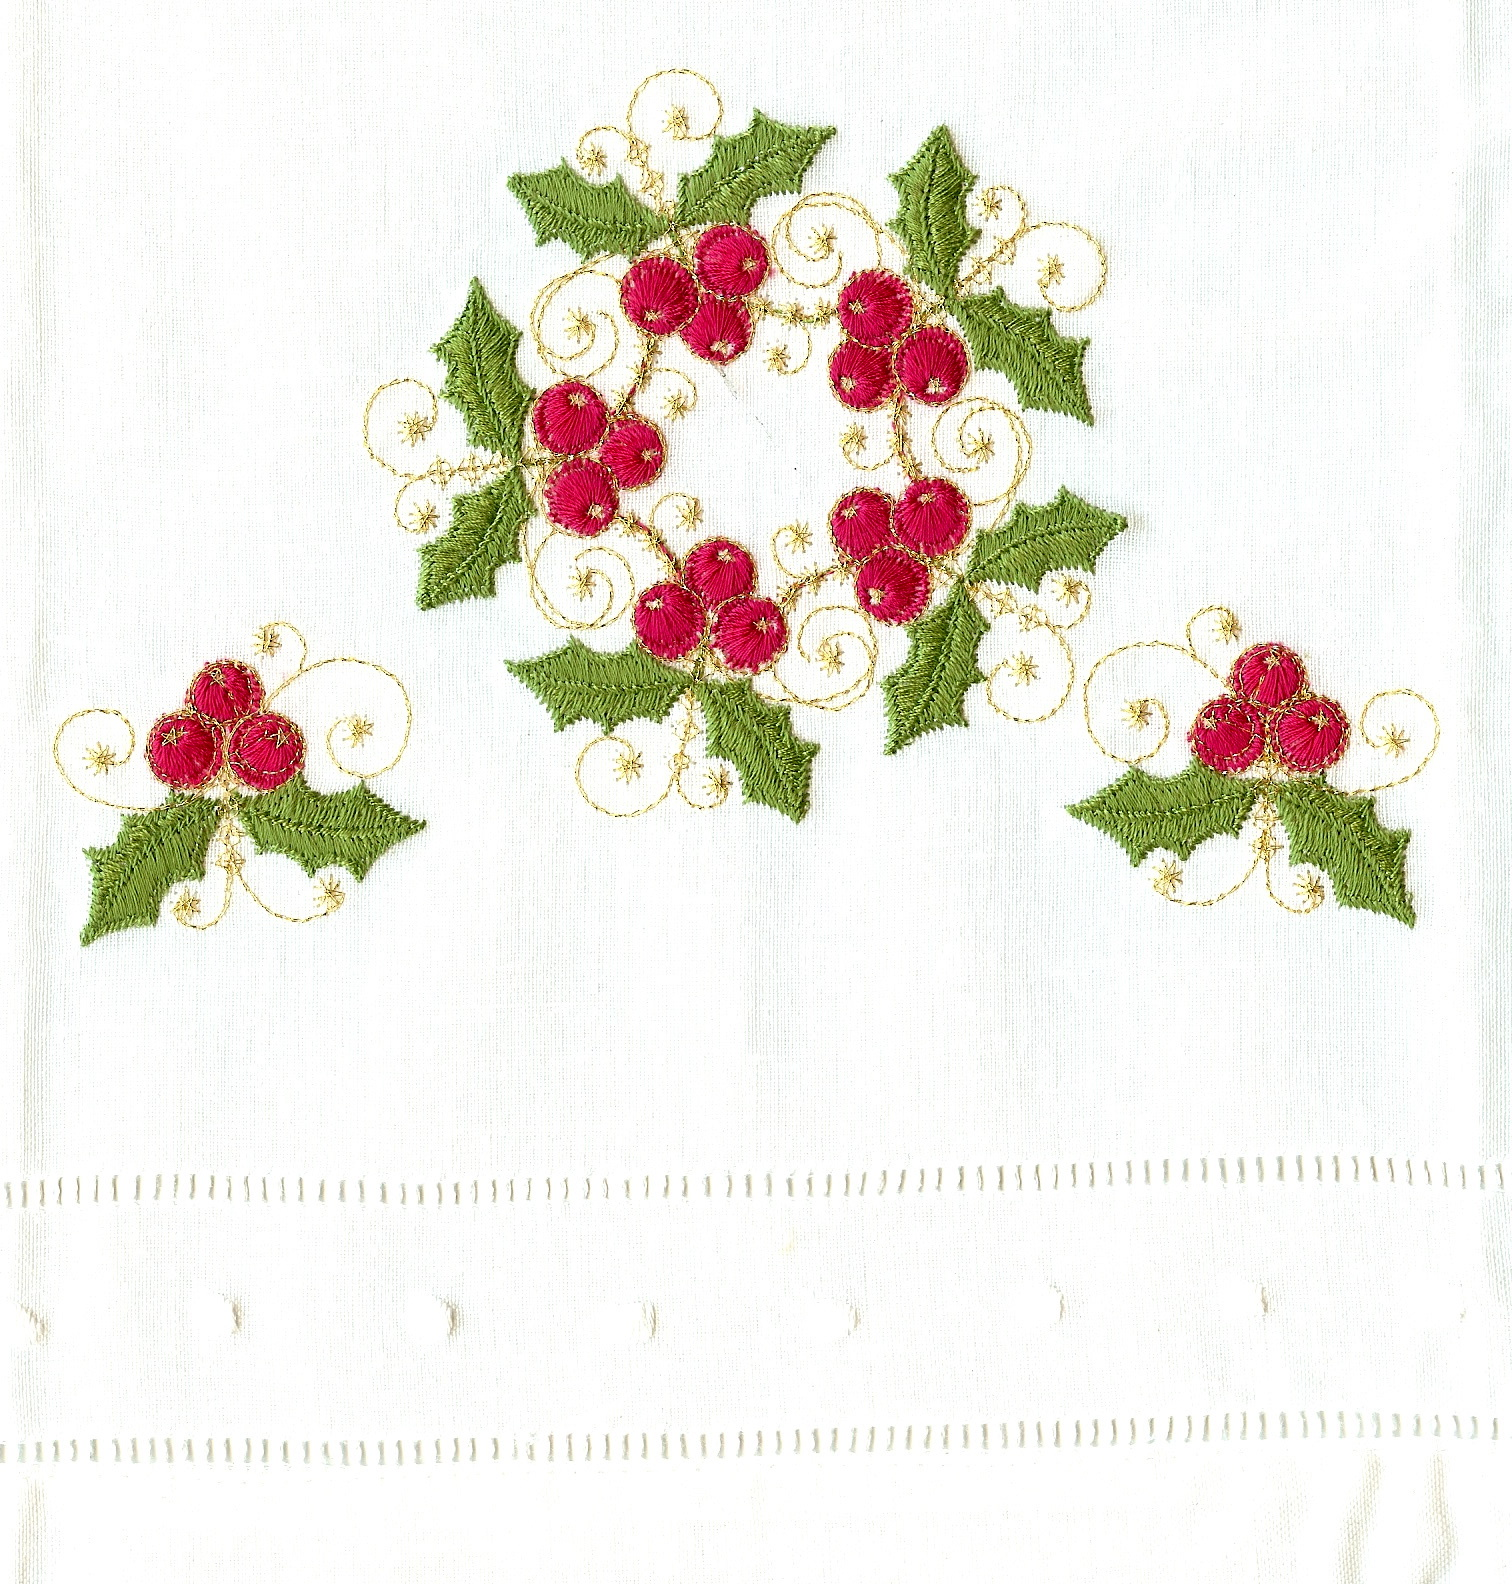 Blanks To Embroider Free Embroidery Patterns